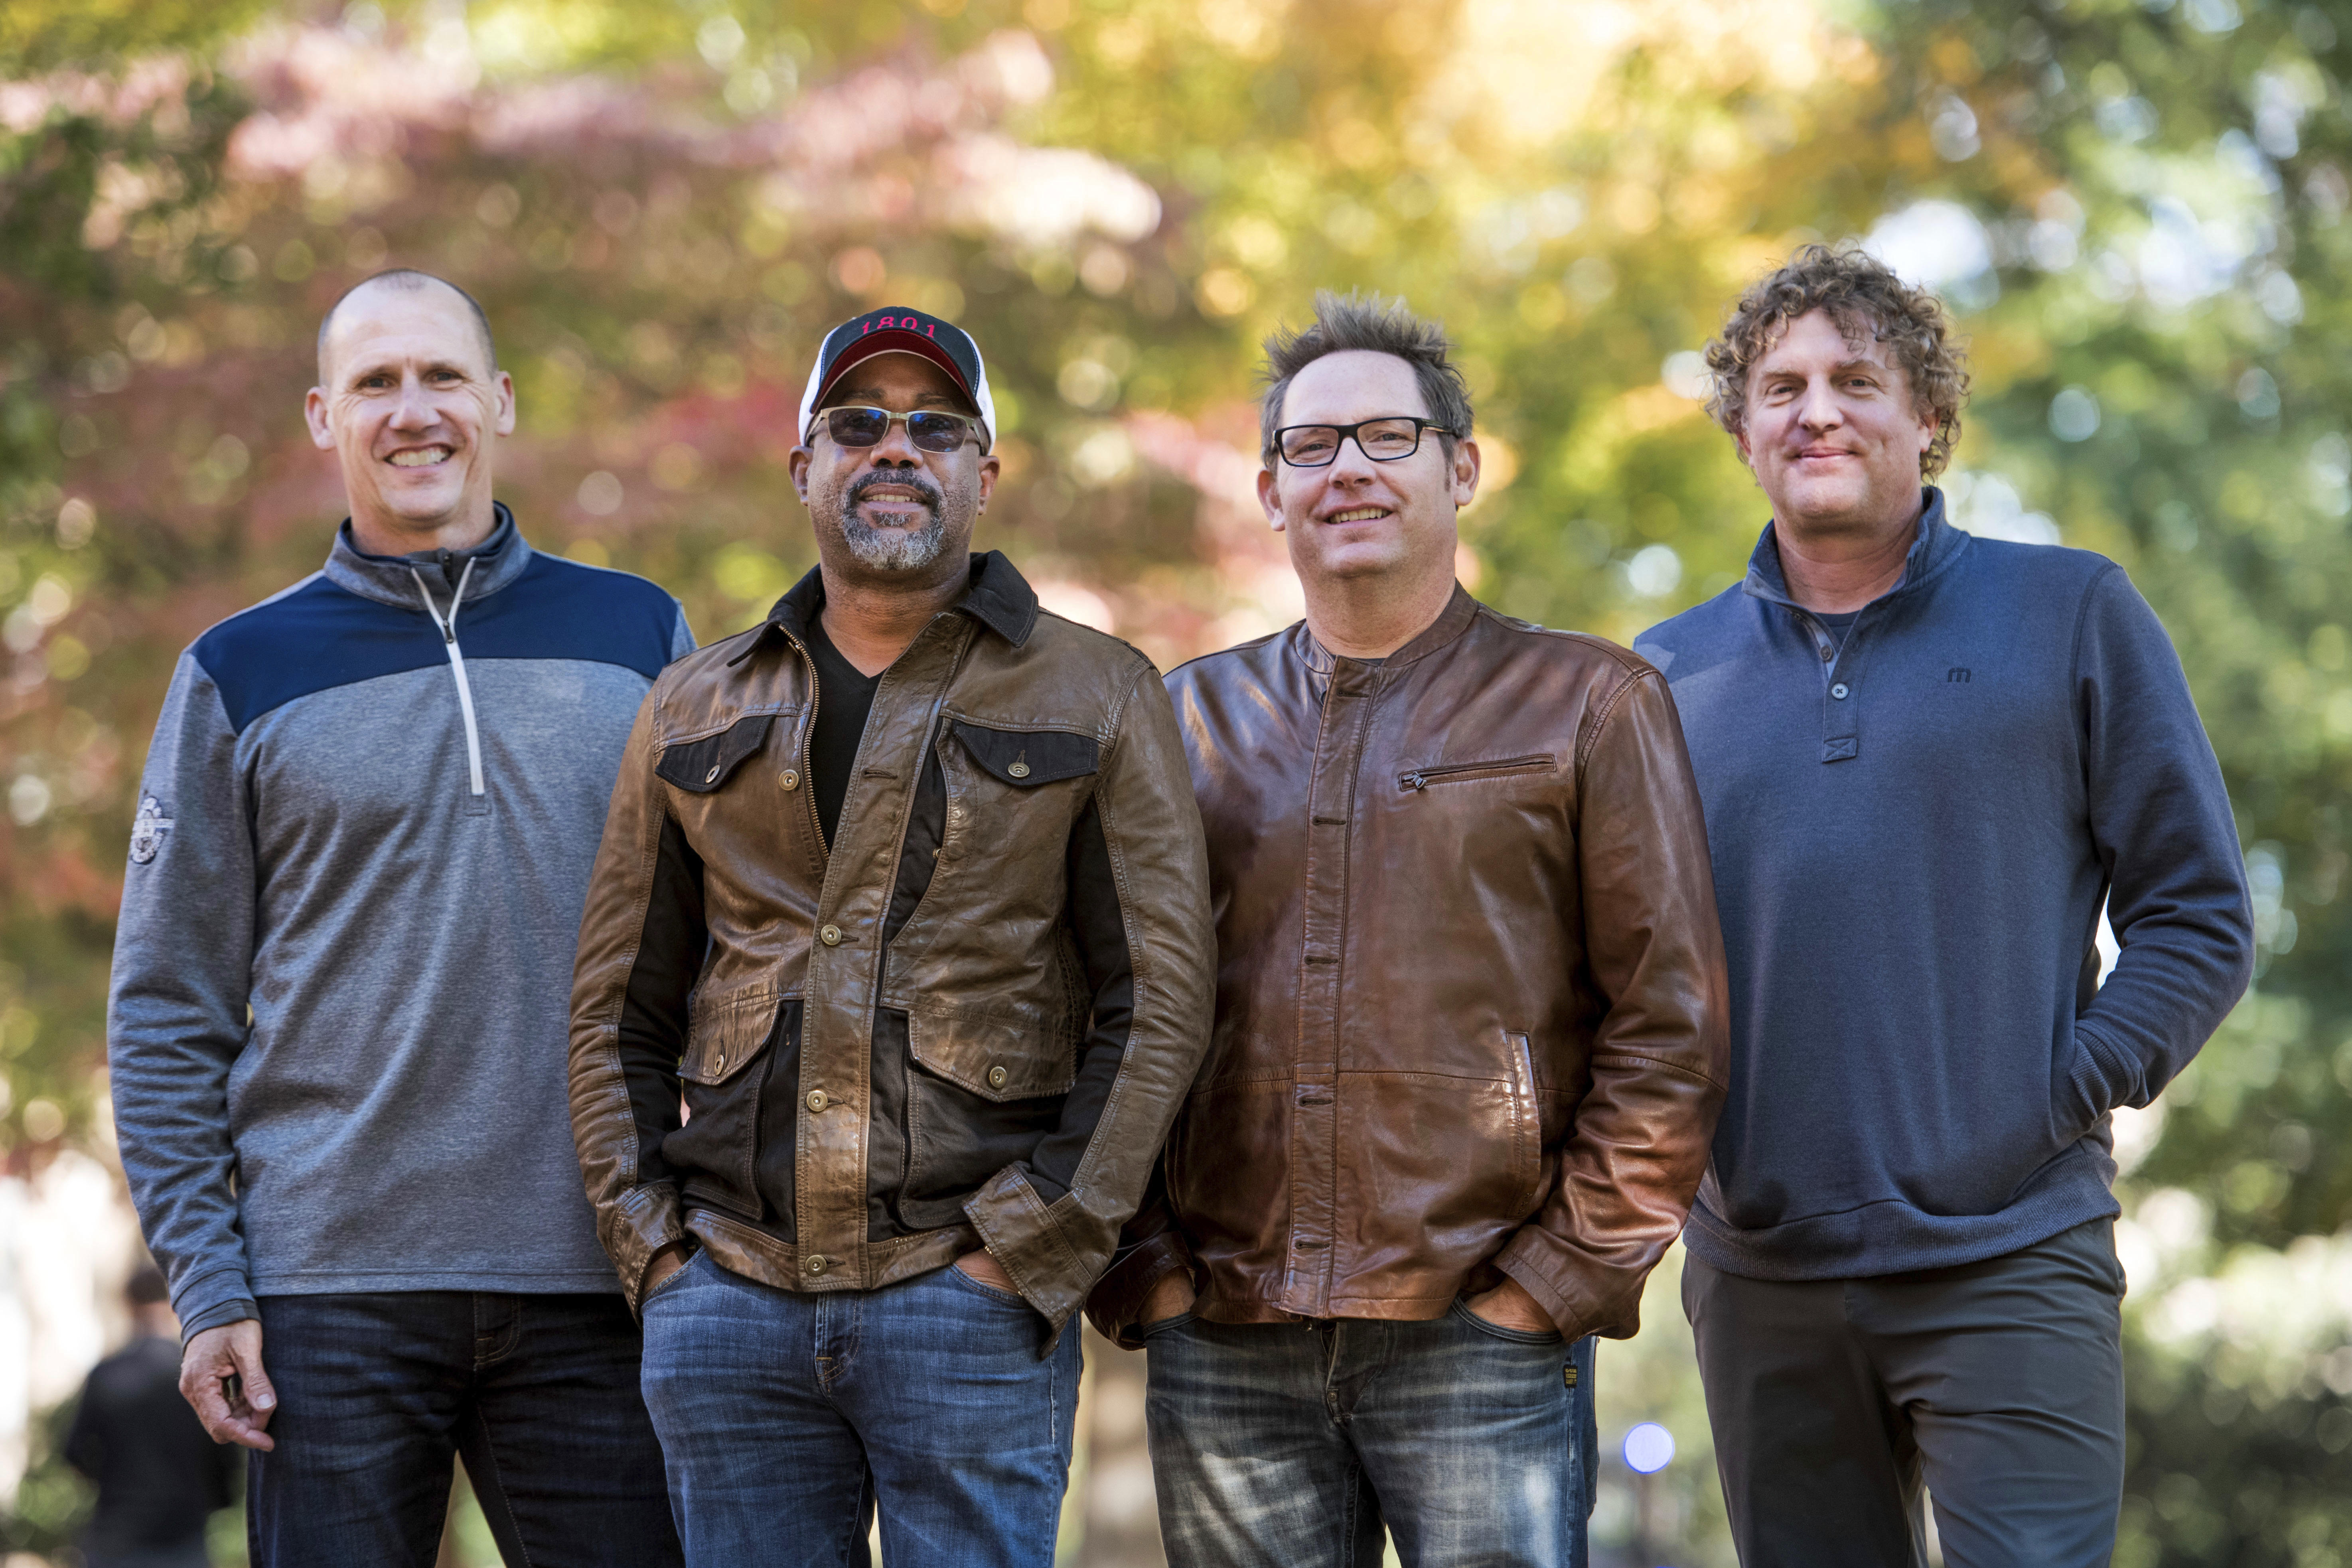 Hootie And The Blowfish Tour 2020.Hootie And The Blowfish Tour Group Is Back Together With